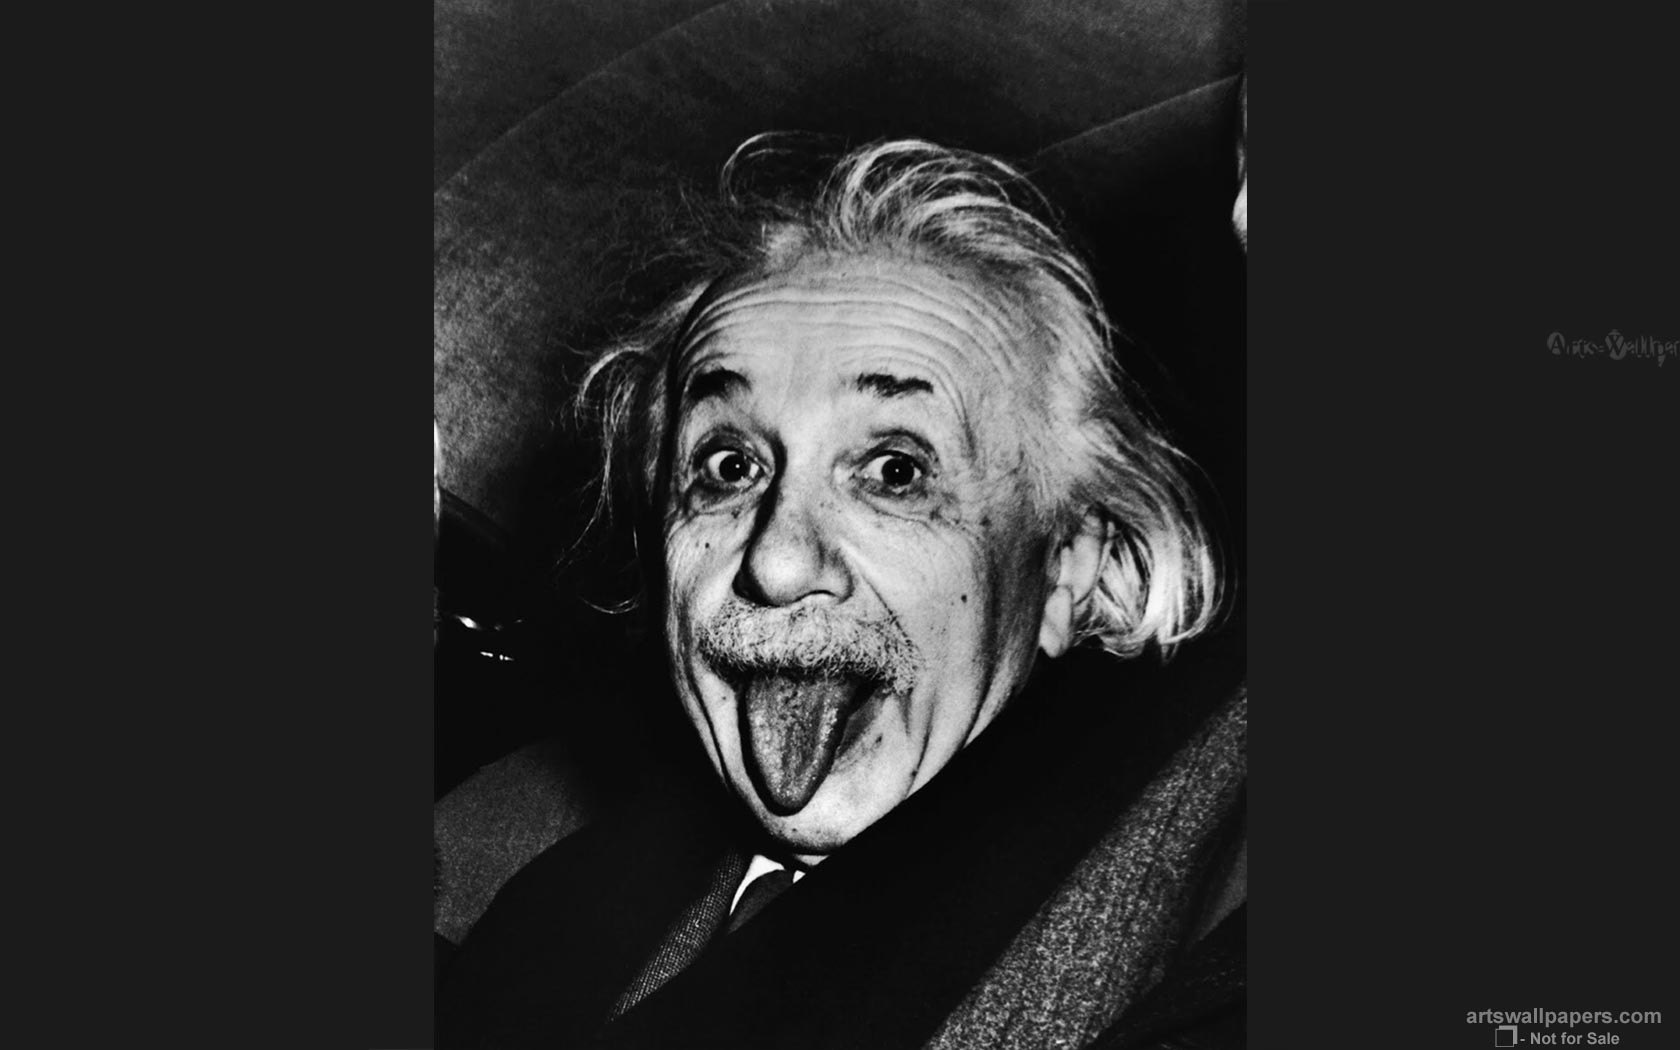 Albert einstein wallpapers hd wallpapersafari - Albert einstein hd images ...